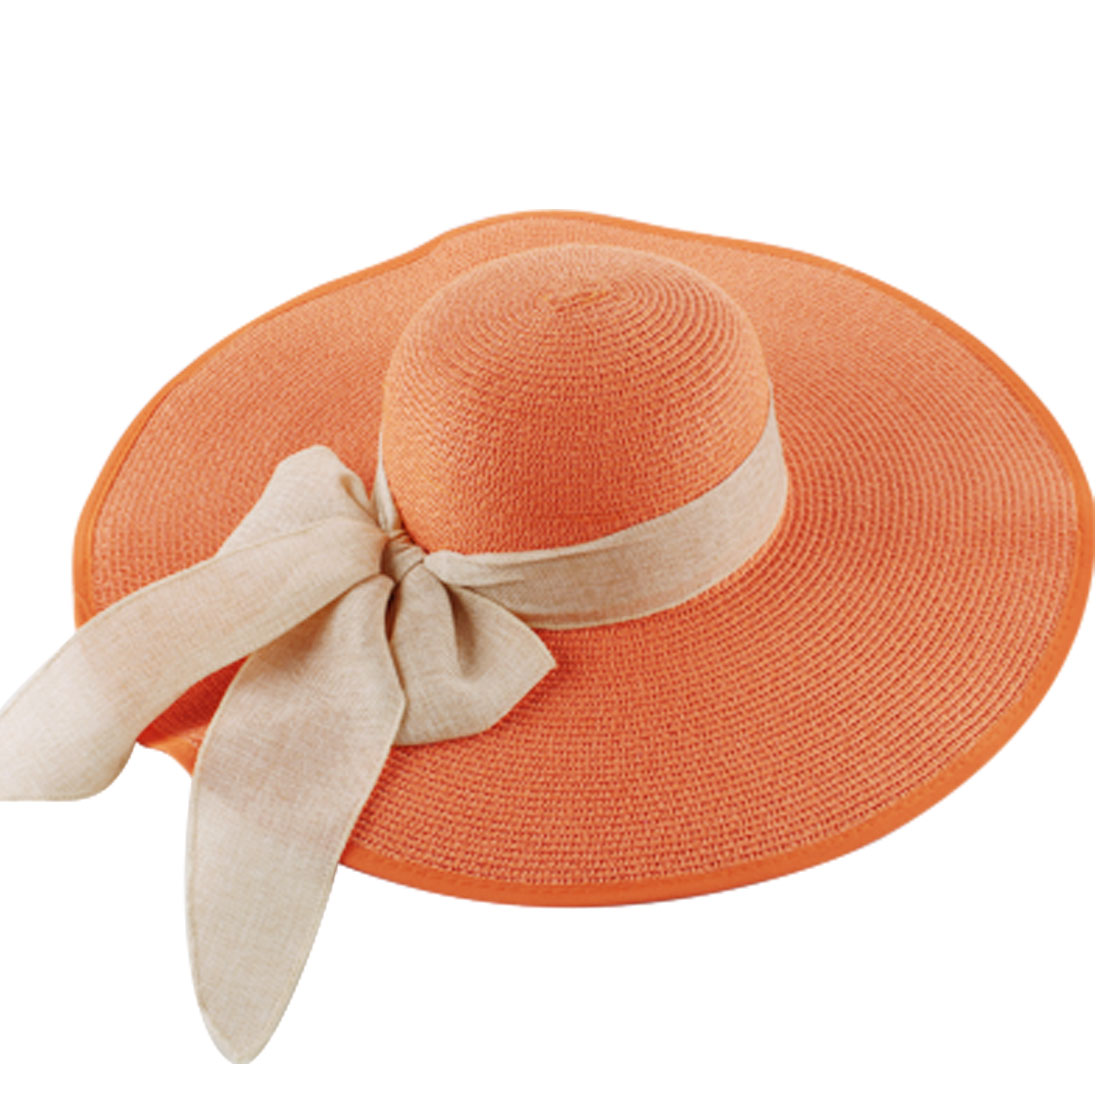 Ladies Orange Wide Brim Removable Self Tie Bow Casual Straw Hat